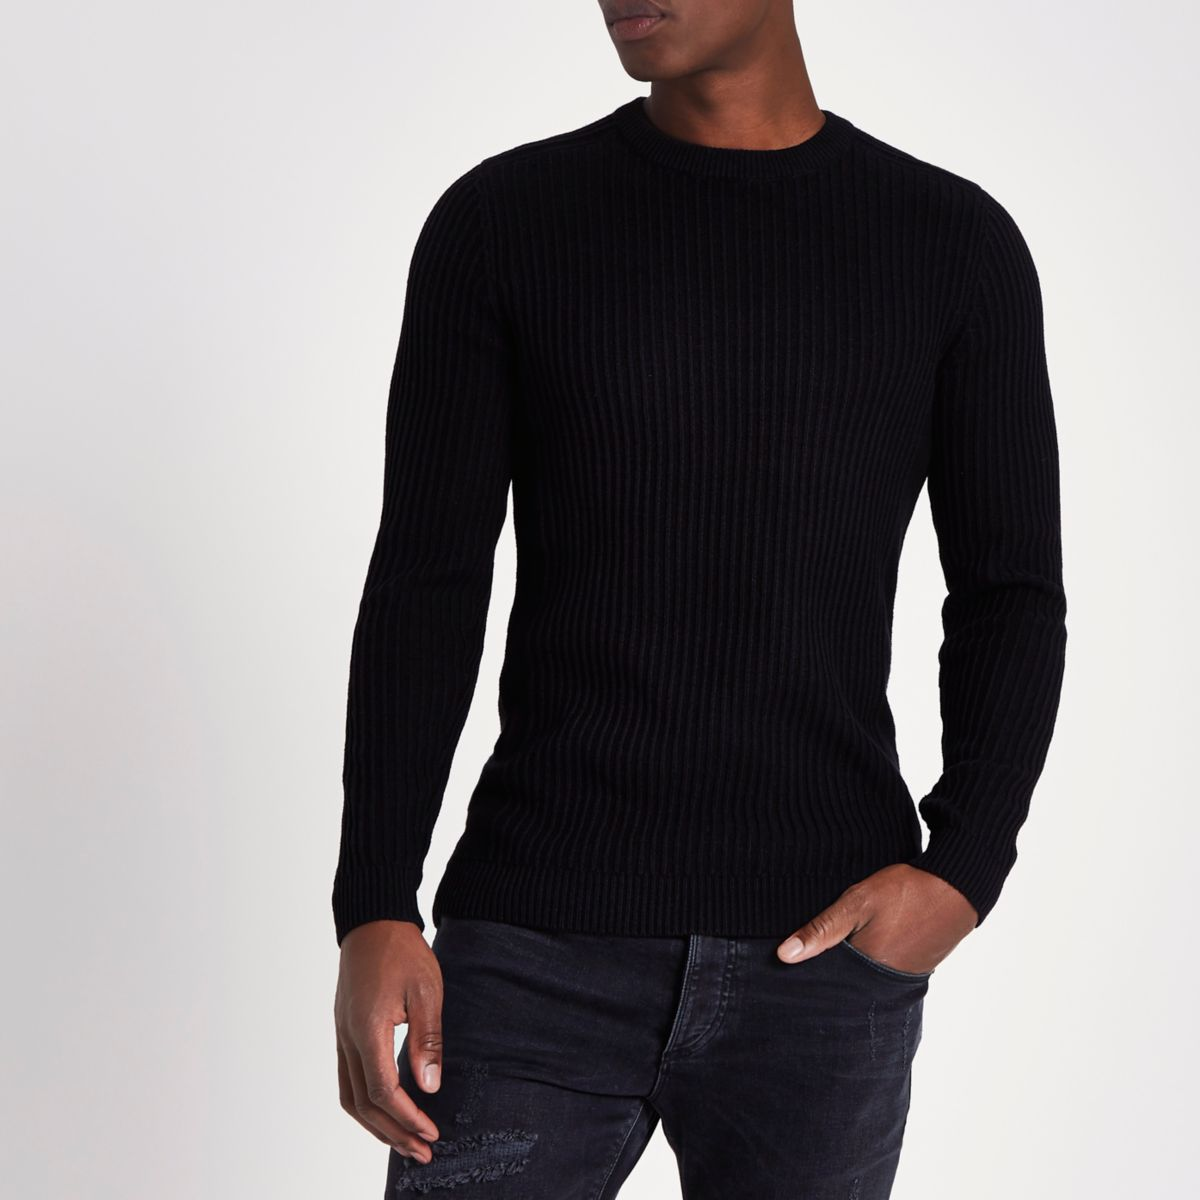 Black rib muscle fit crew neck sweater